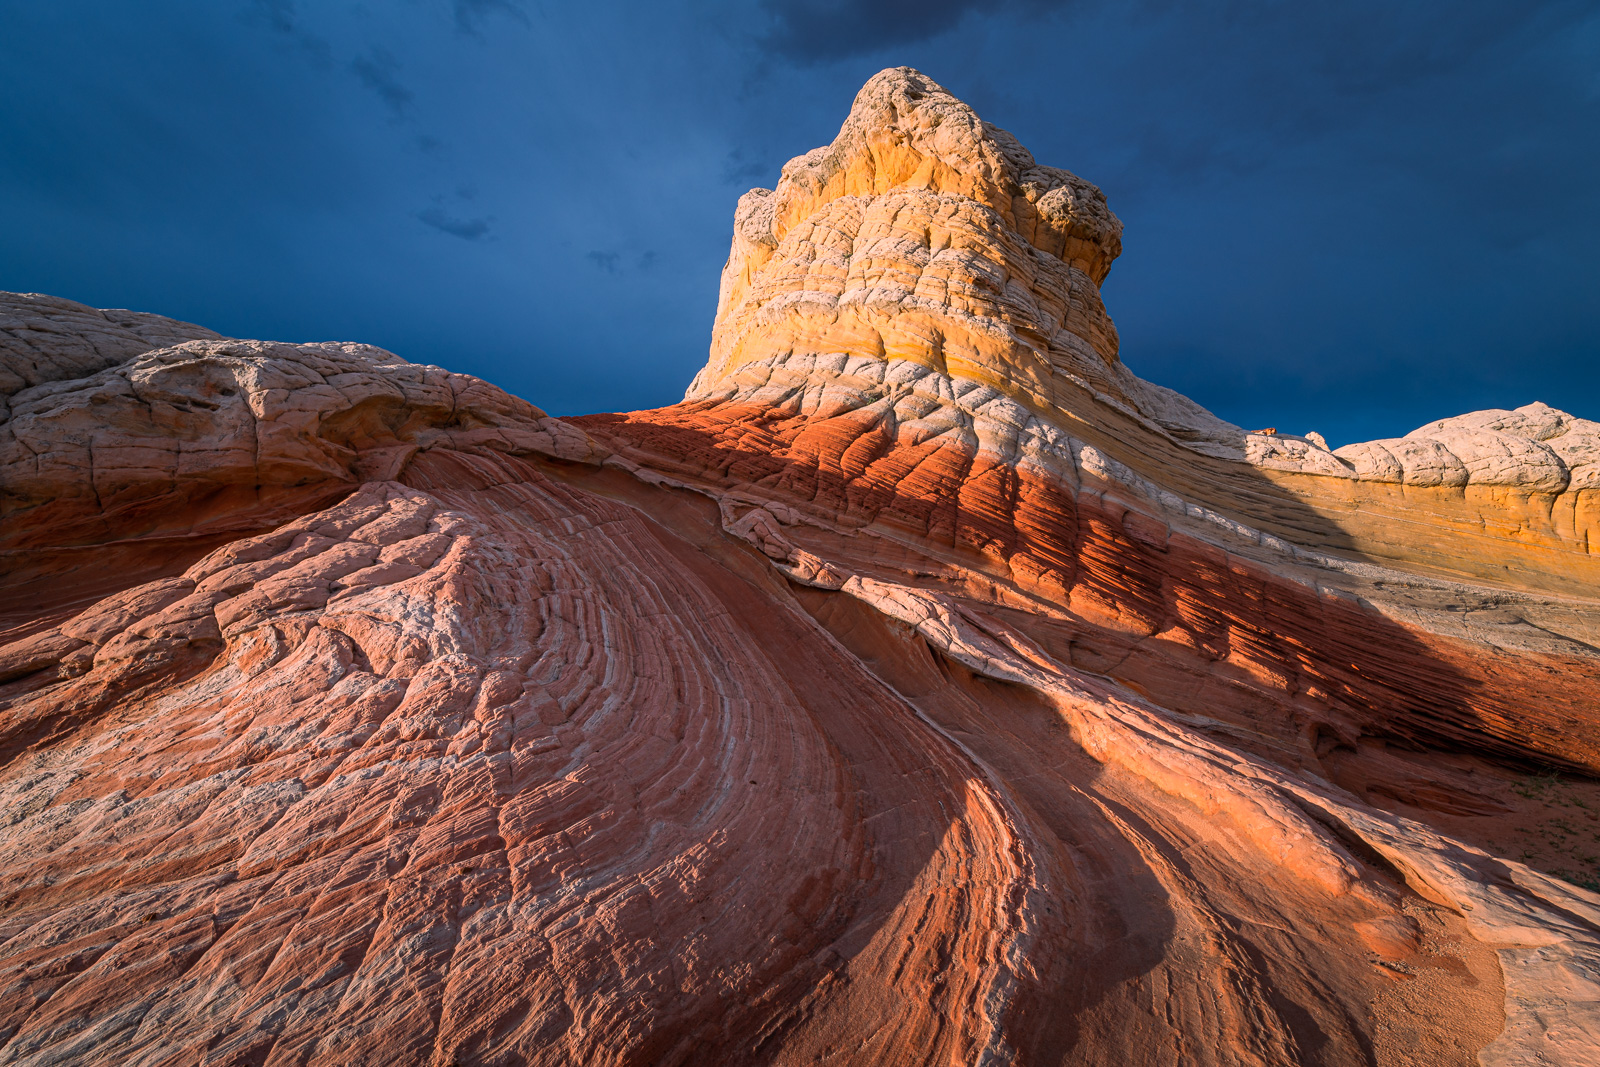 Bizarre sandstone formations at sunset under menacing storm skies from a remote location known as White Pocket.